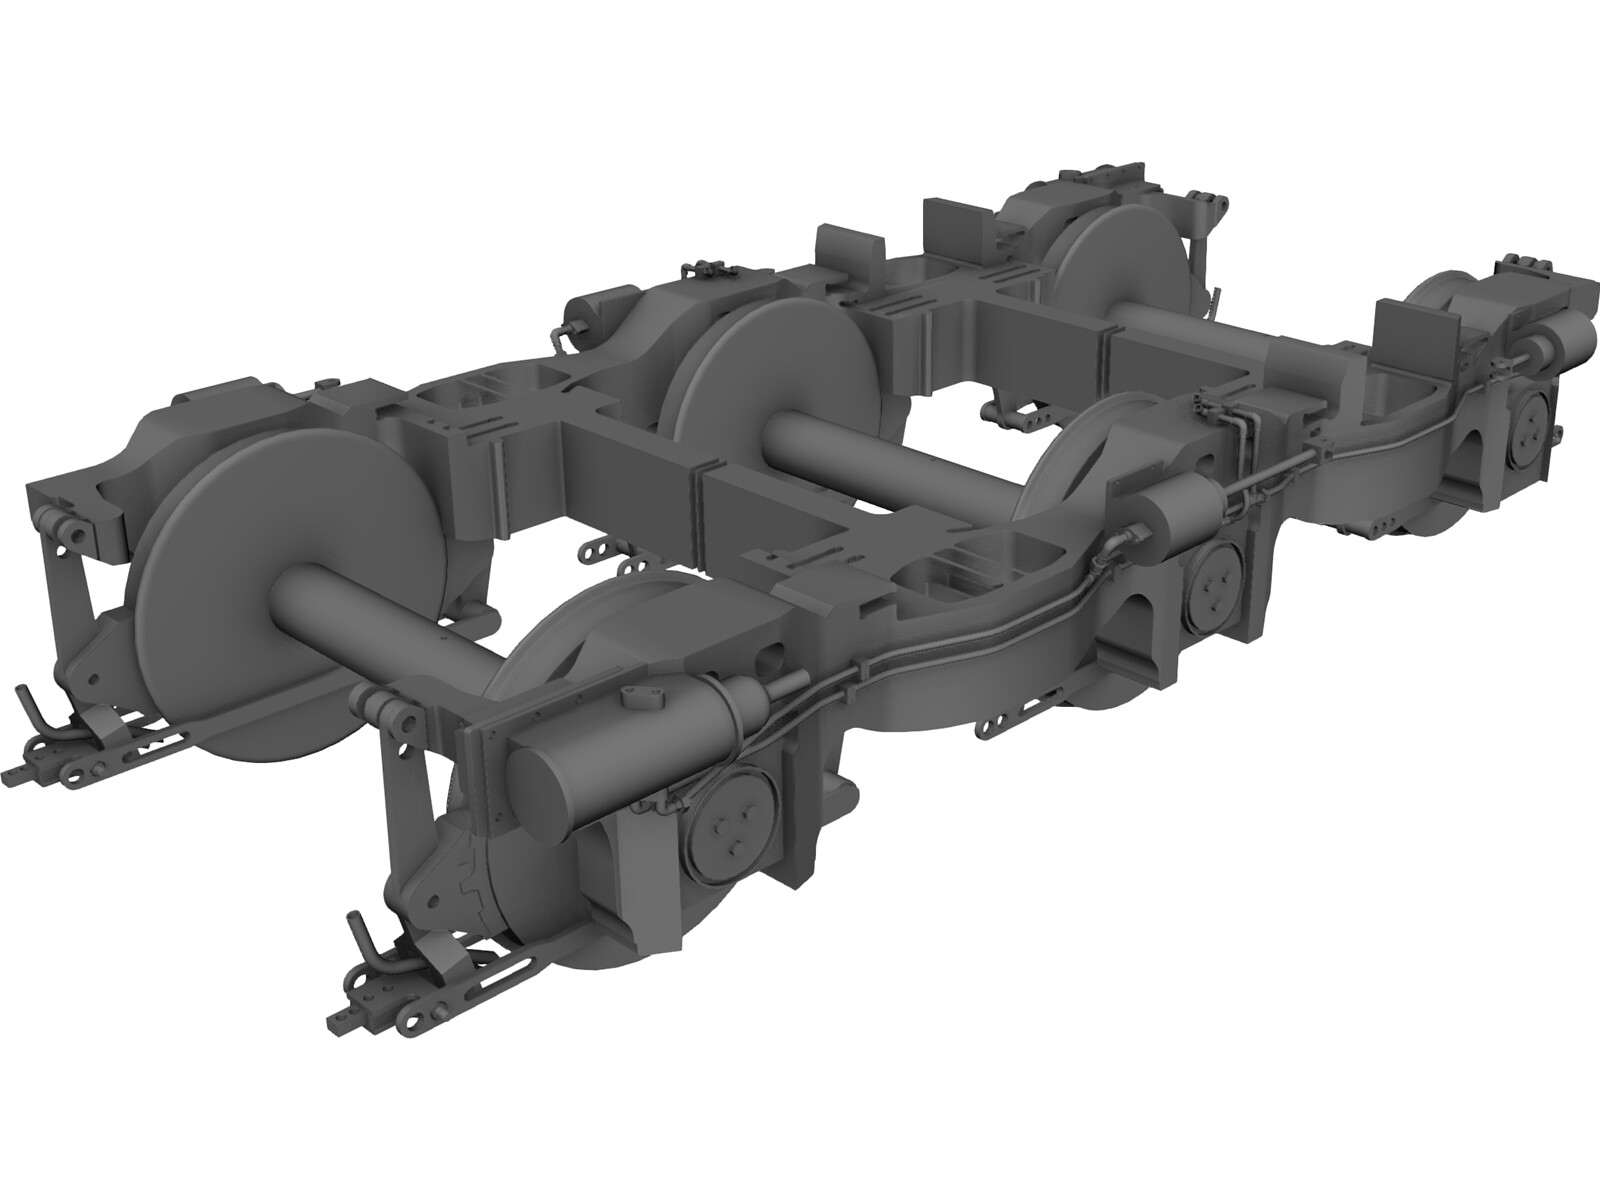 Locomotive Bogie 3 Axle 3D CAD Model